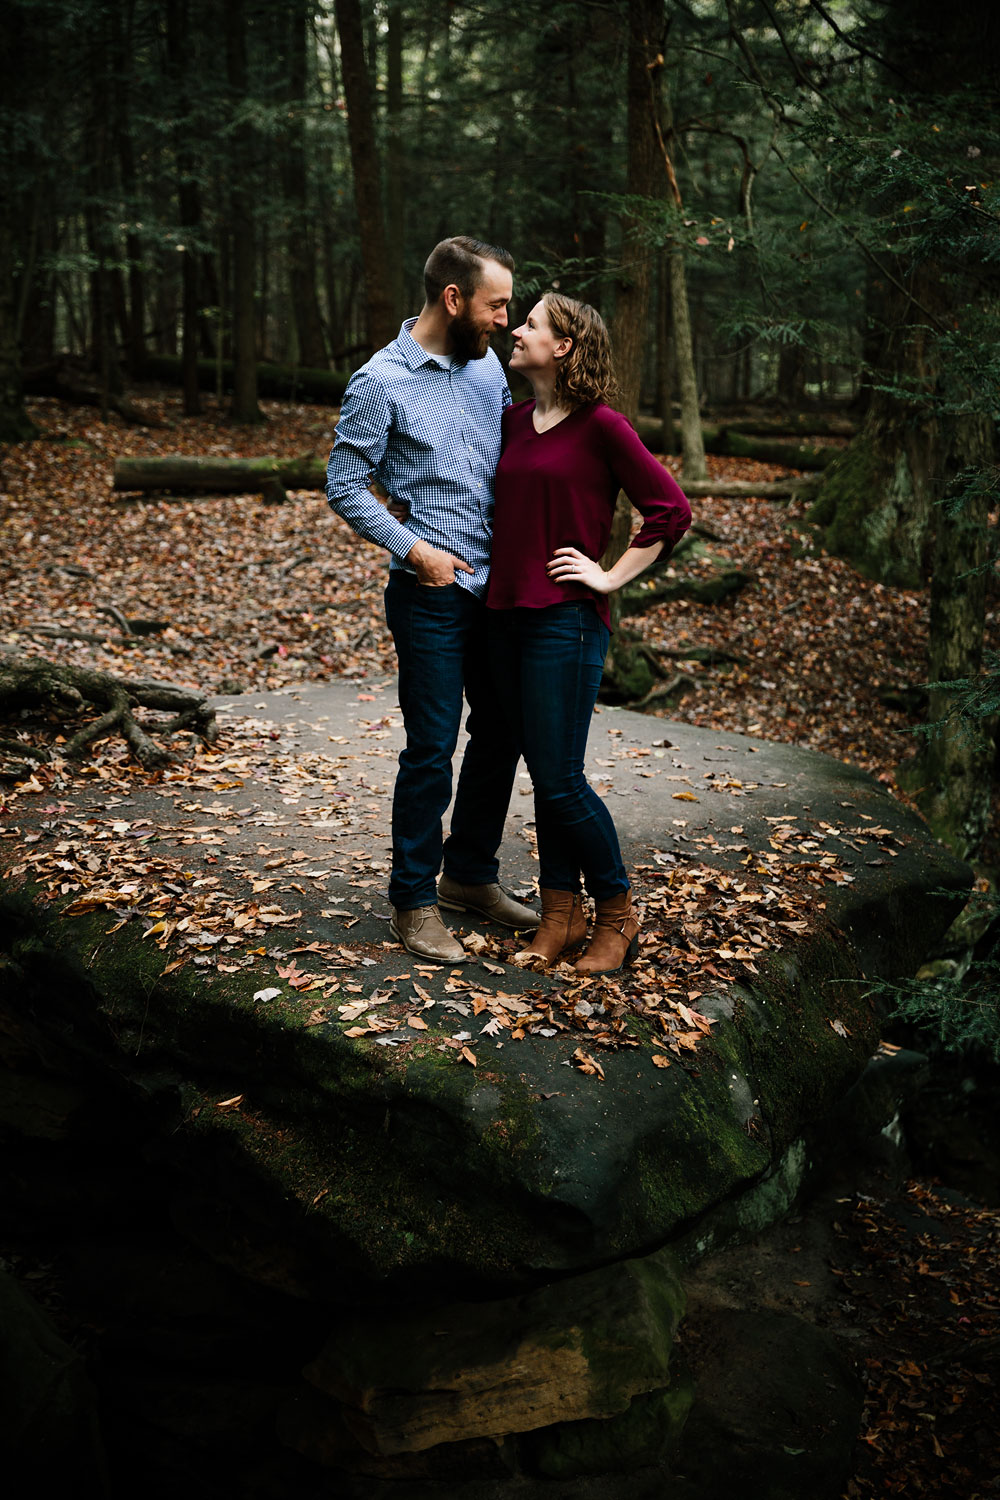 cuyahoga-valley-national-park-engagement-photography-peninsula-ohio-38.jpg